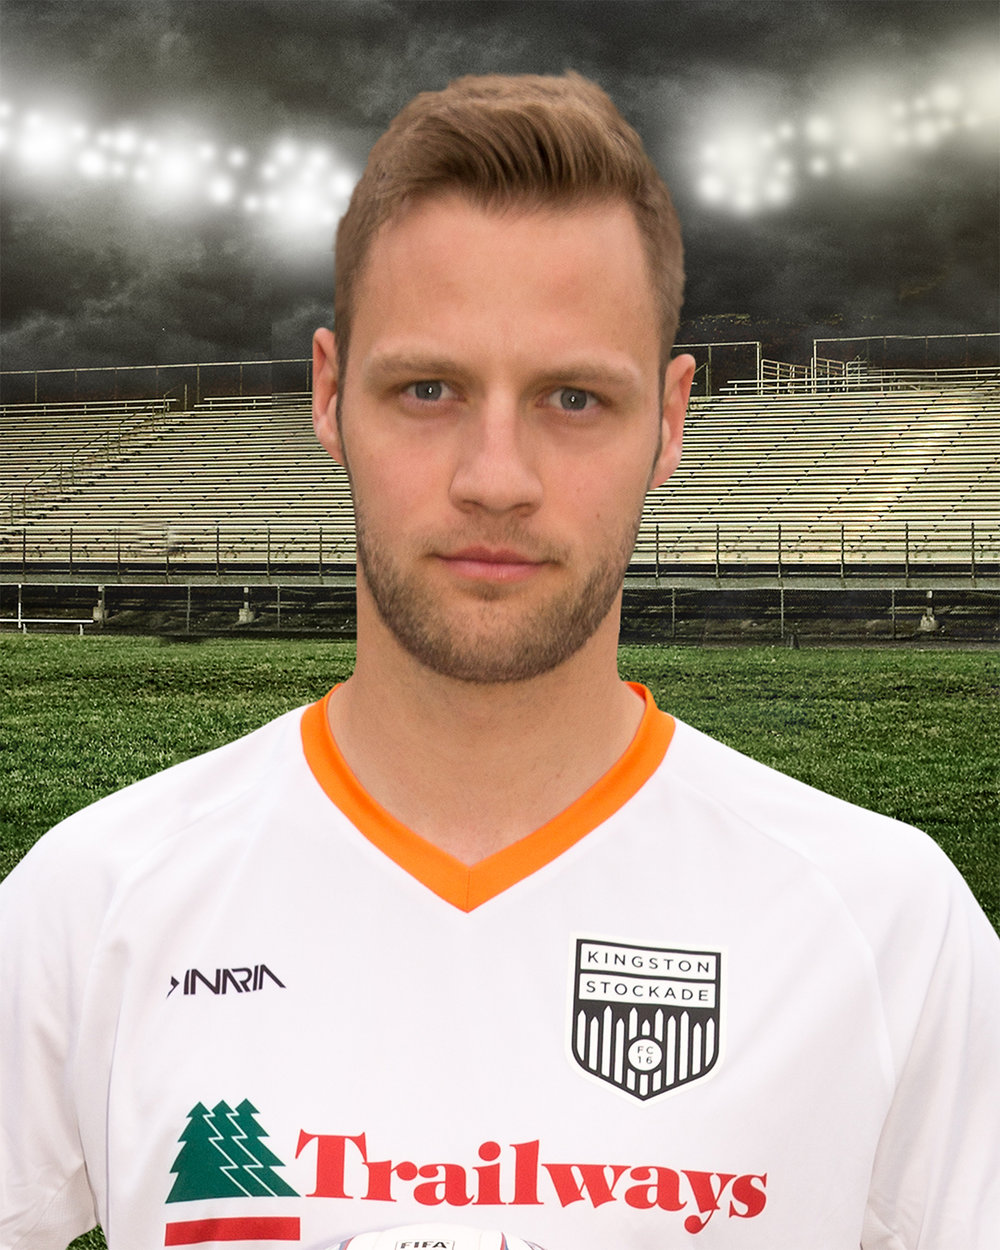 #9 Michael Creswick (F)<br>(Newcastle United Youth Academy)<br>Newcastle-upon-Tyne, England